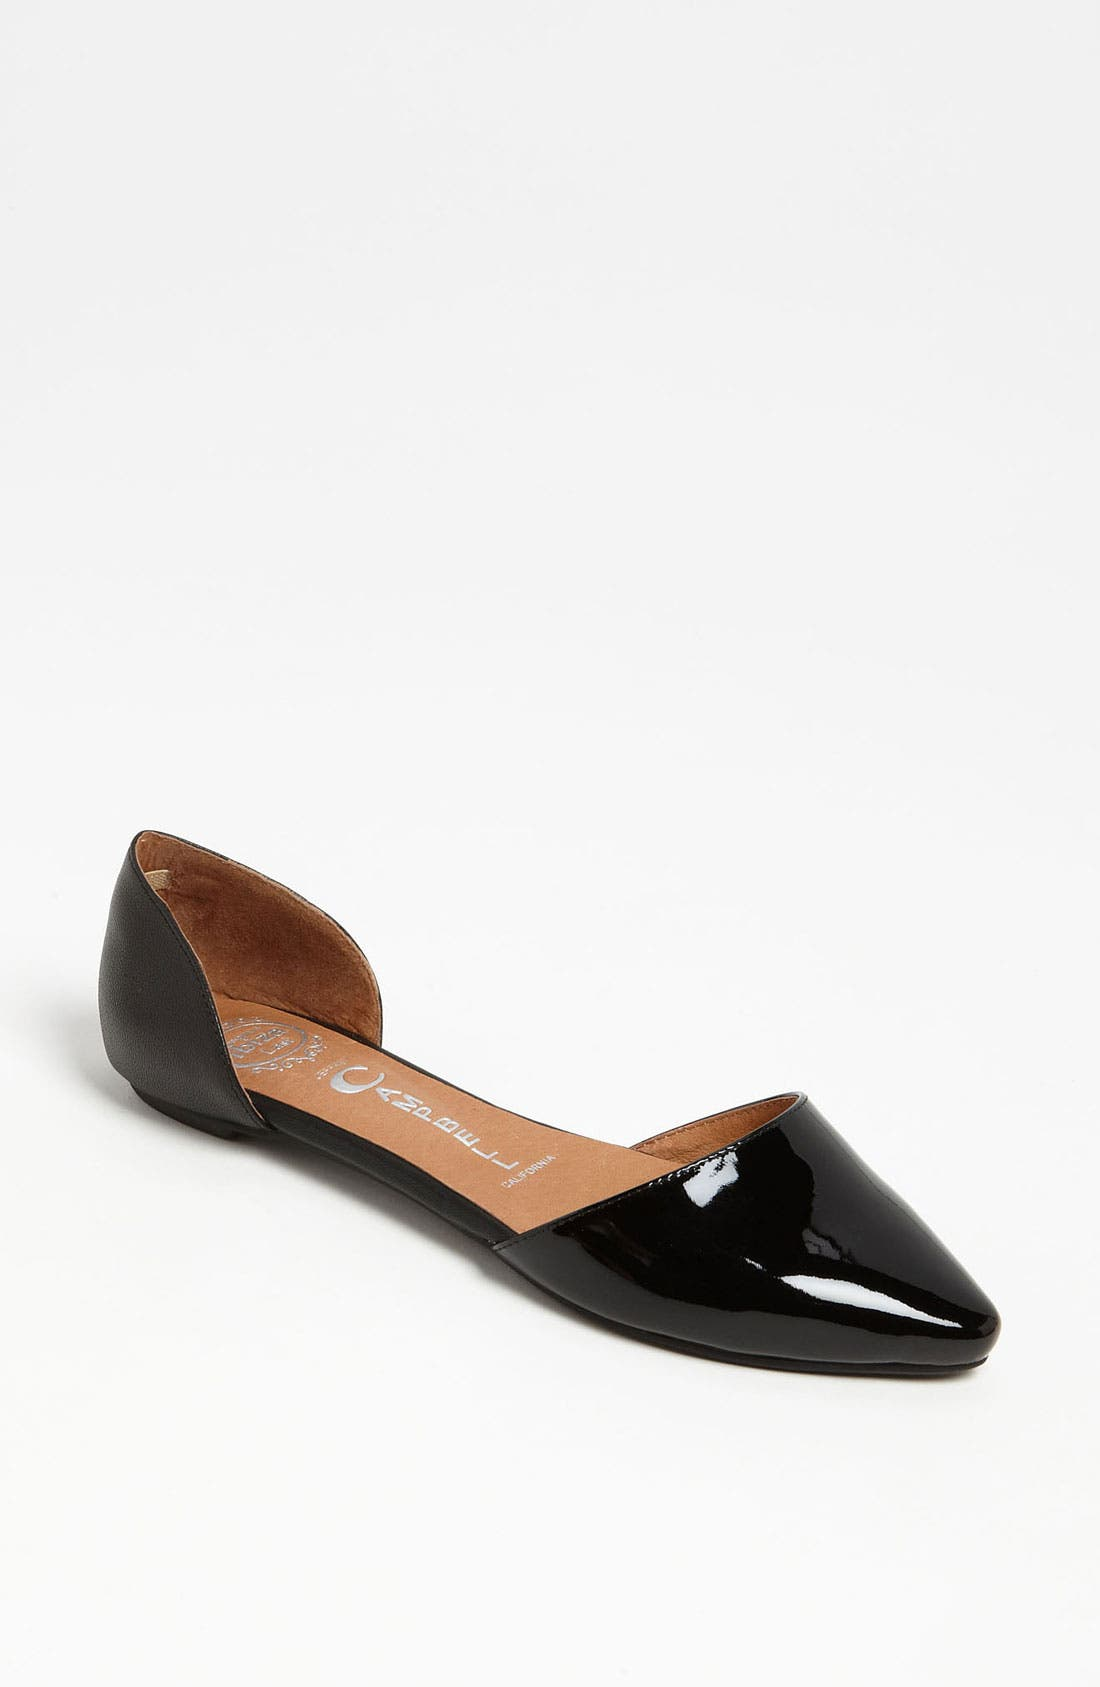 JEFFREY CAMPBELL, 'In Love' Flat, Main thumbnail 1, color, 002